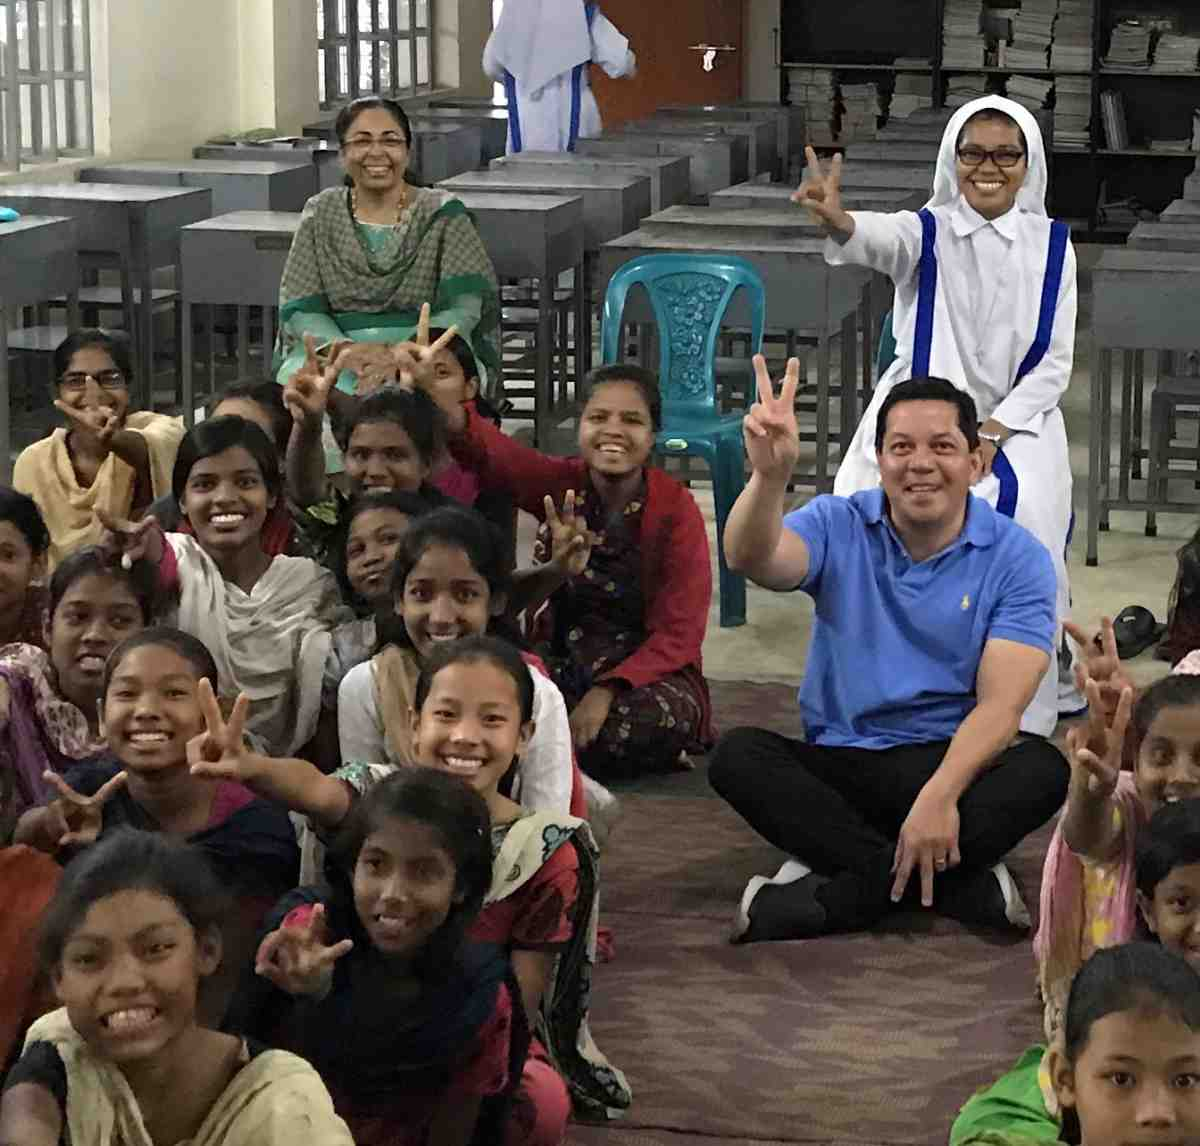 Bangladesh - Deacon Rick Medina, CWM Executive Director, pictured with Sister Hima, SMRA, and residents of Bottomley Home Girls' Orphanage